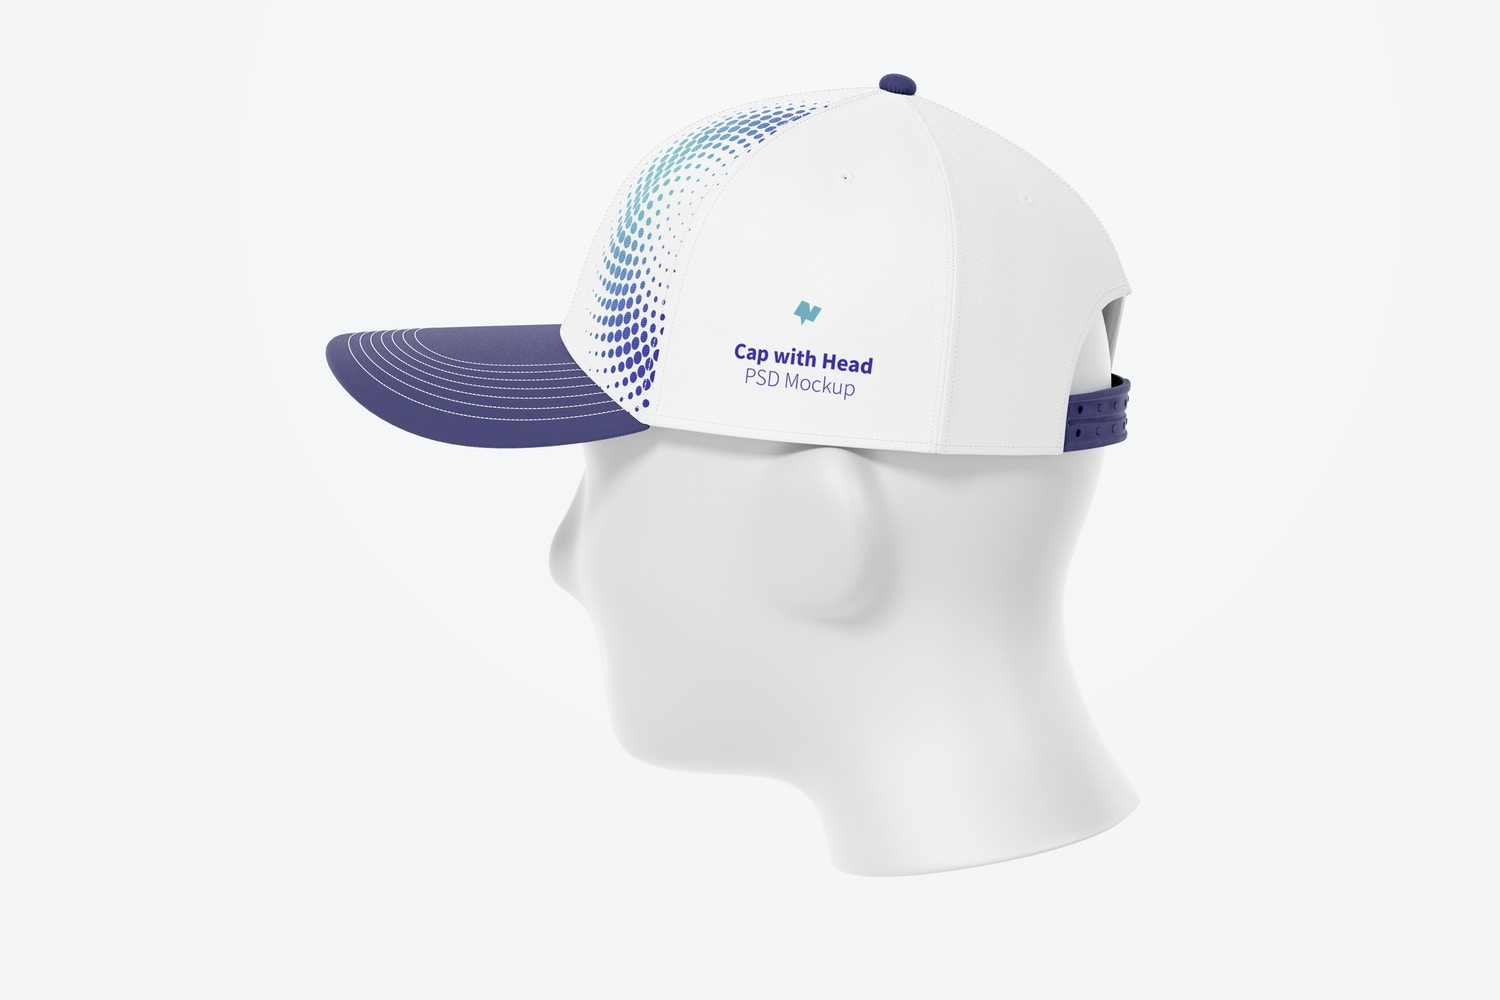 Cap with Head Mockup, Right View